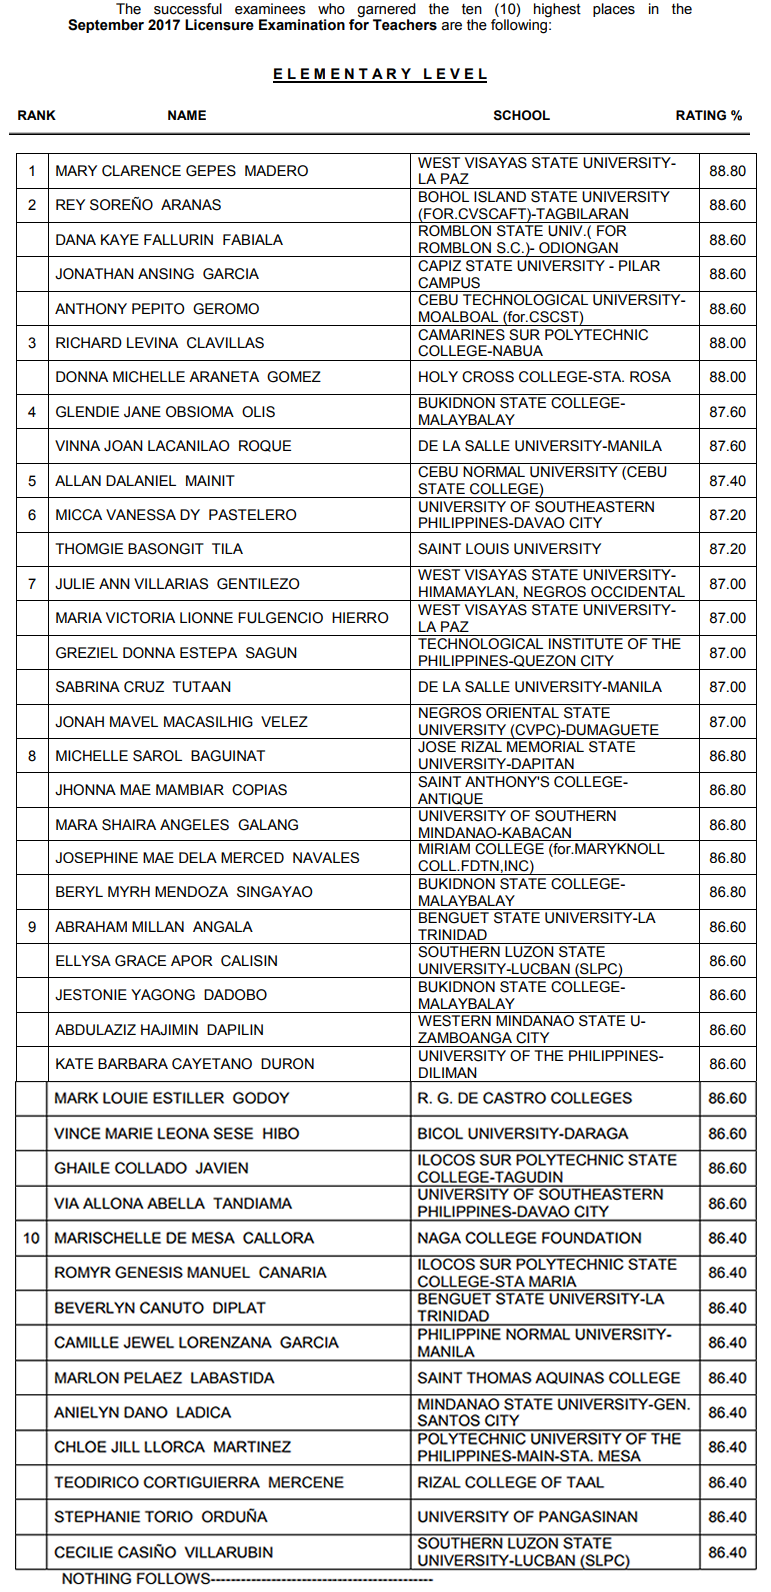 Top 10 Examinees September 2017 LET Results Elementary Level